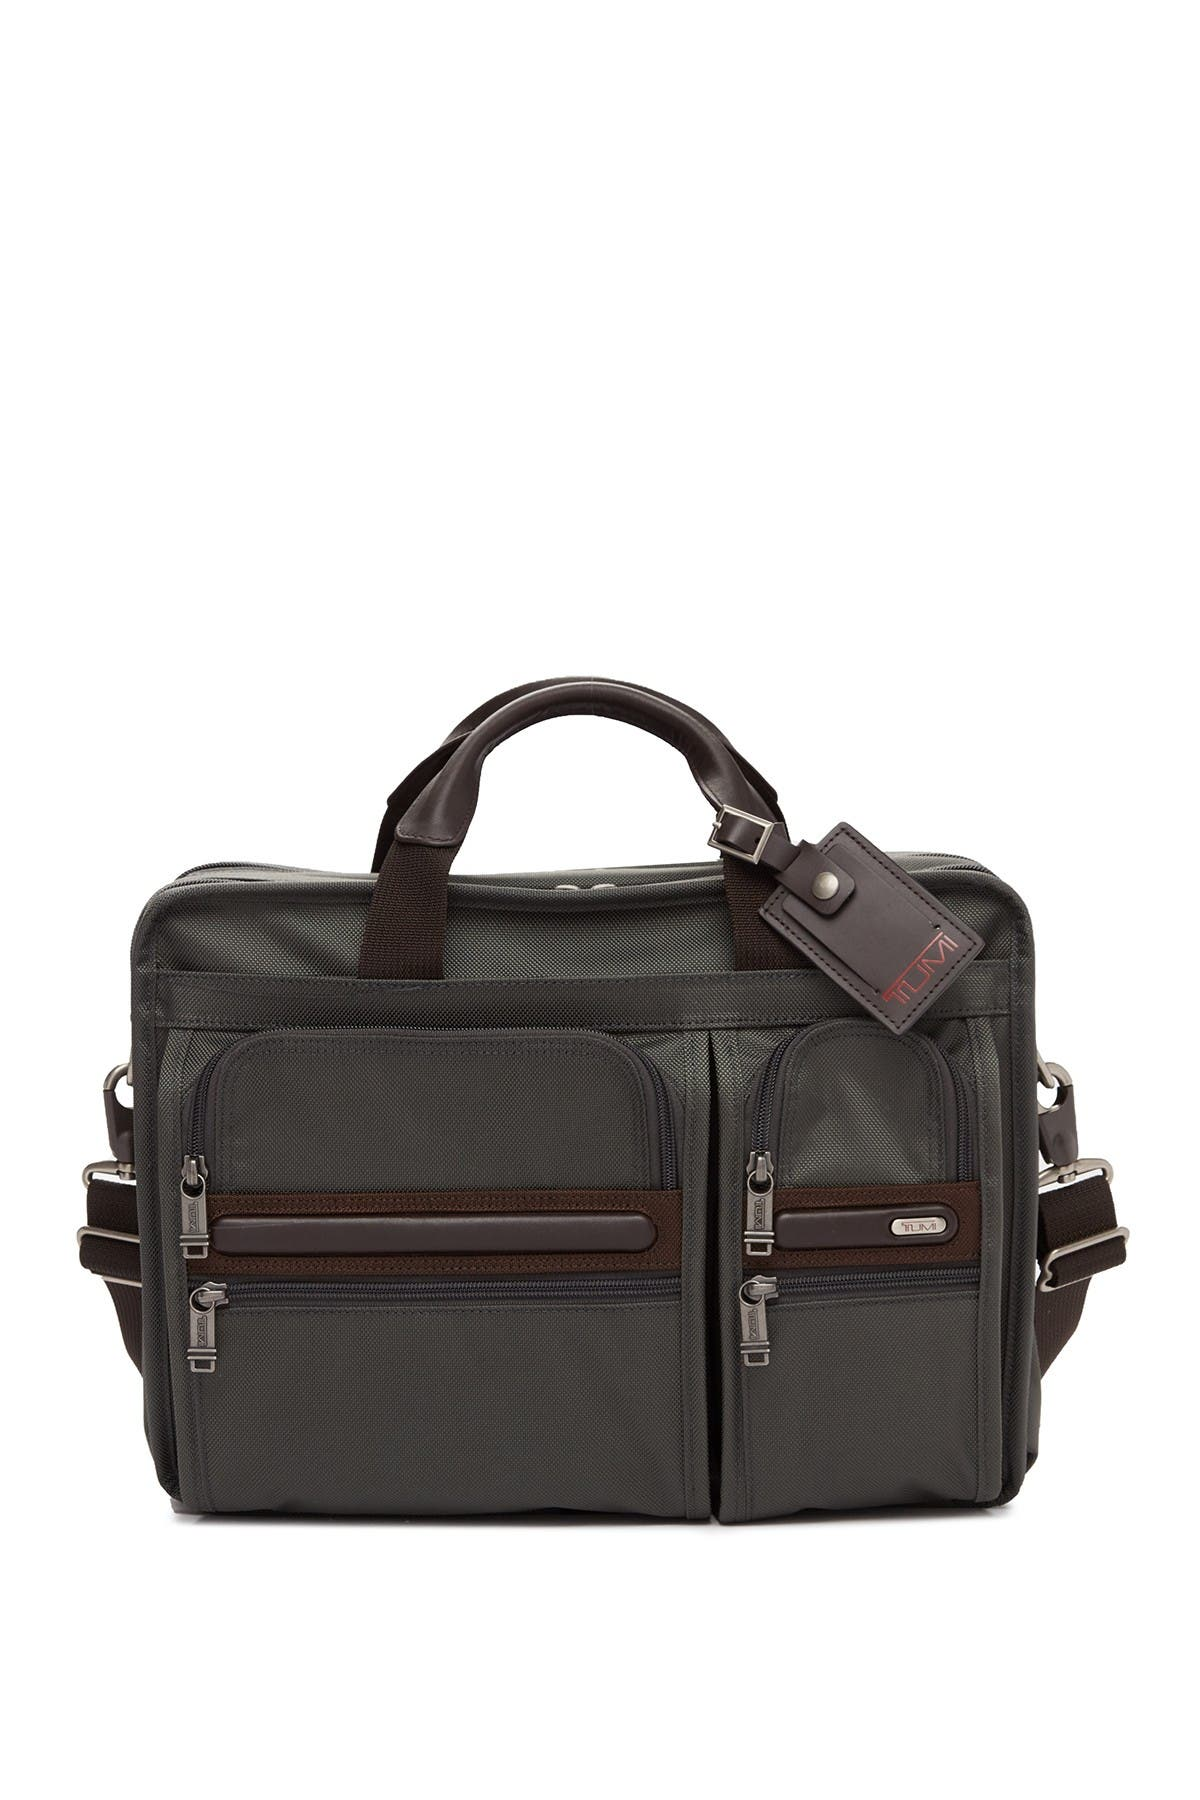 Image of Tumi Expandable Organizer Computer Brief